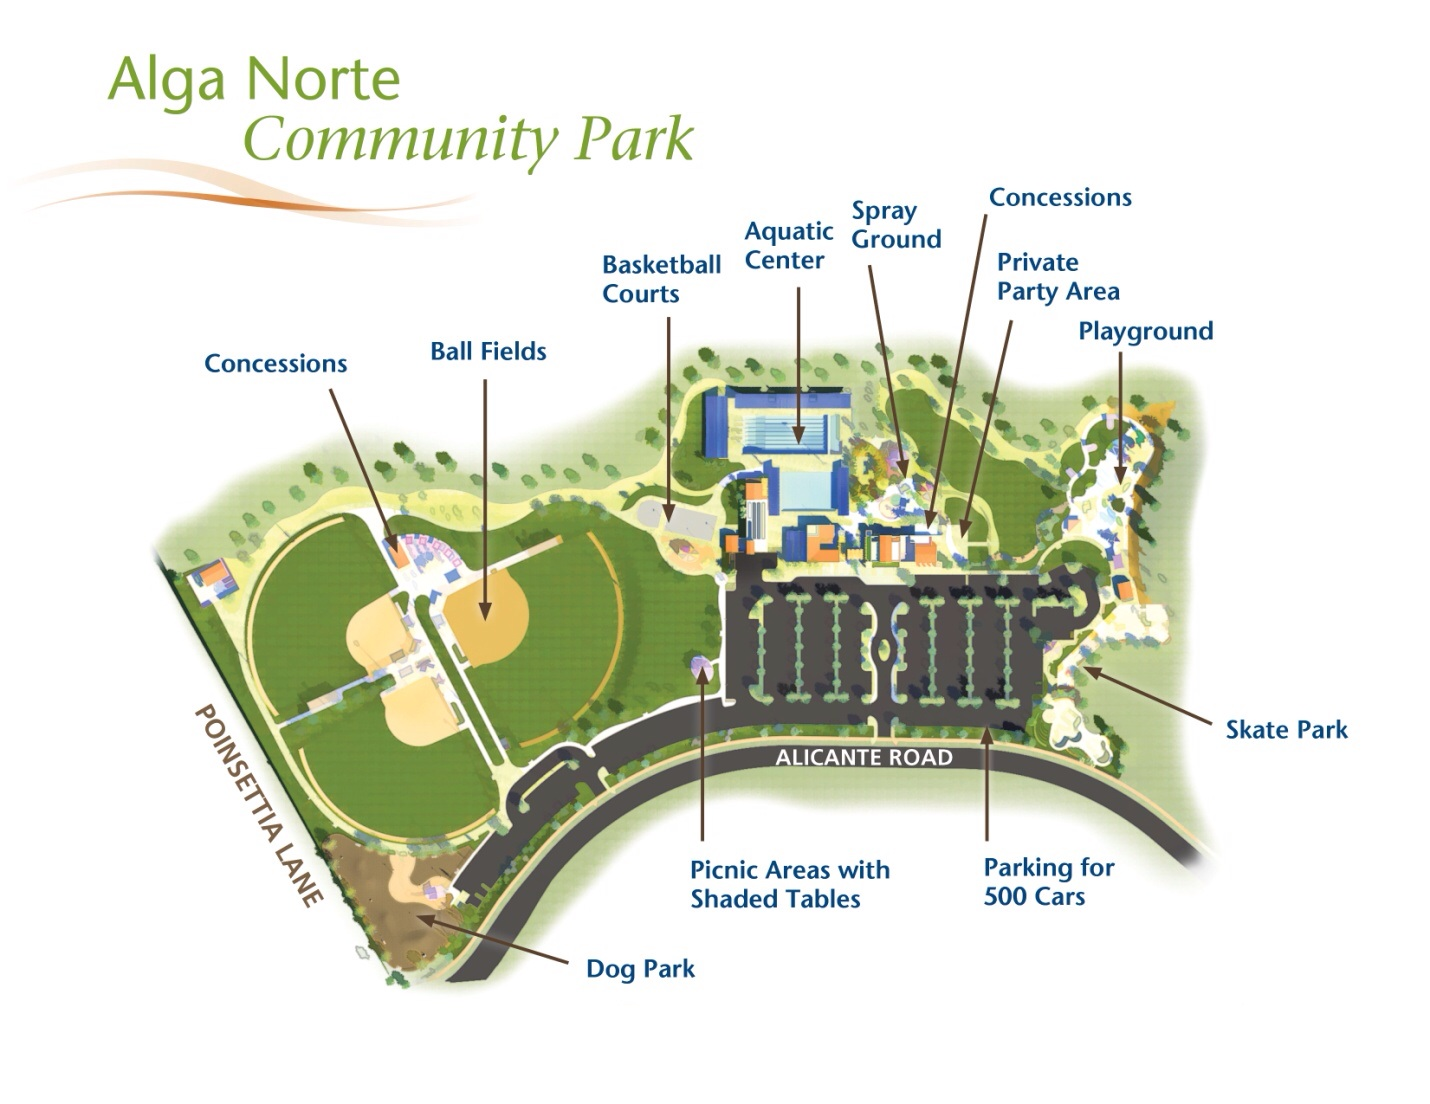 Alga Norte Community Park